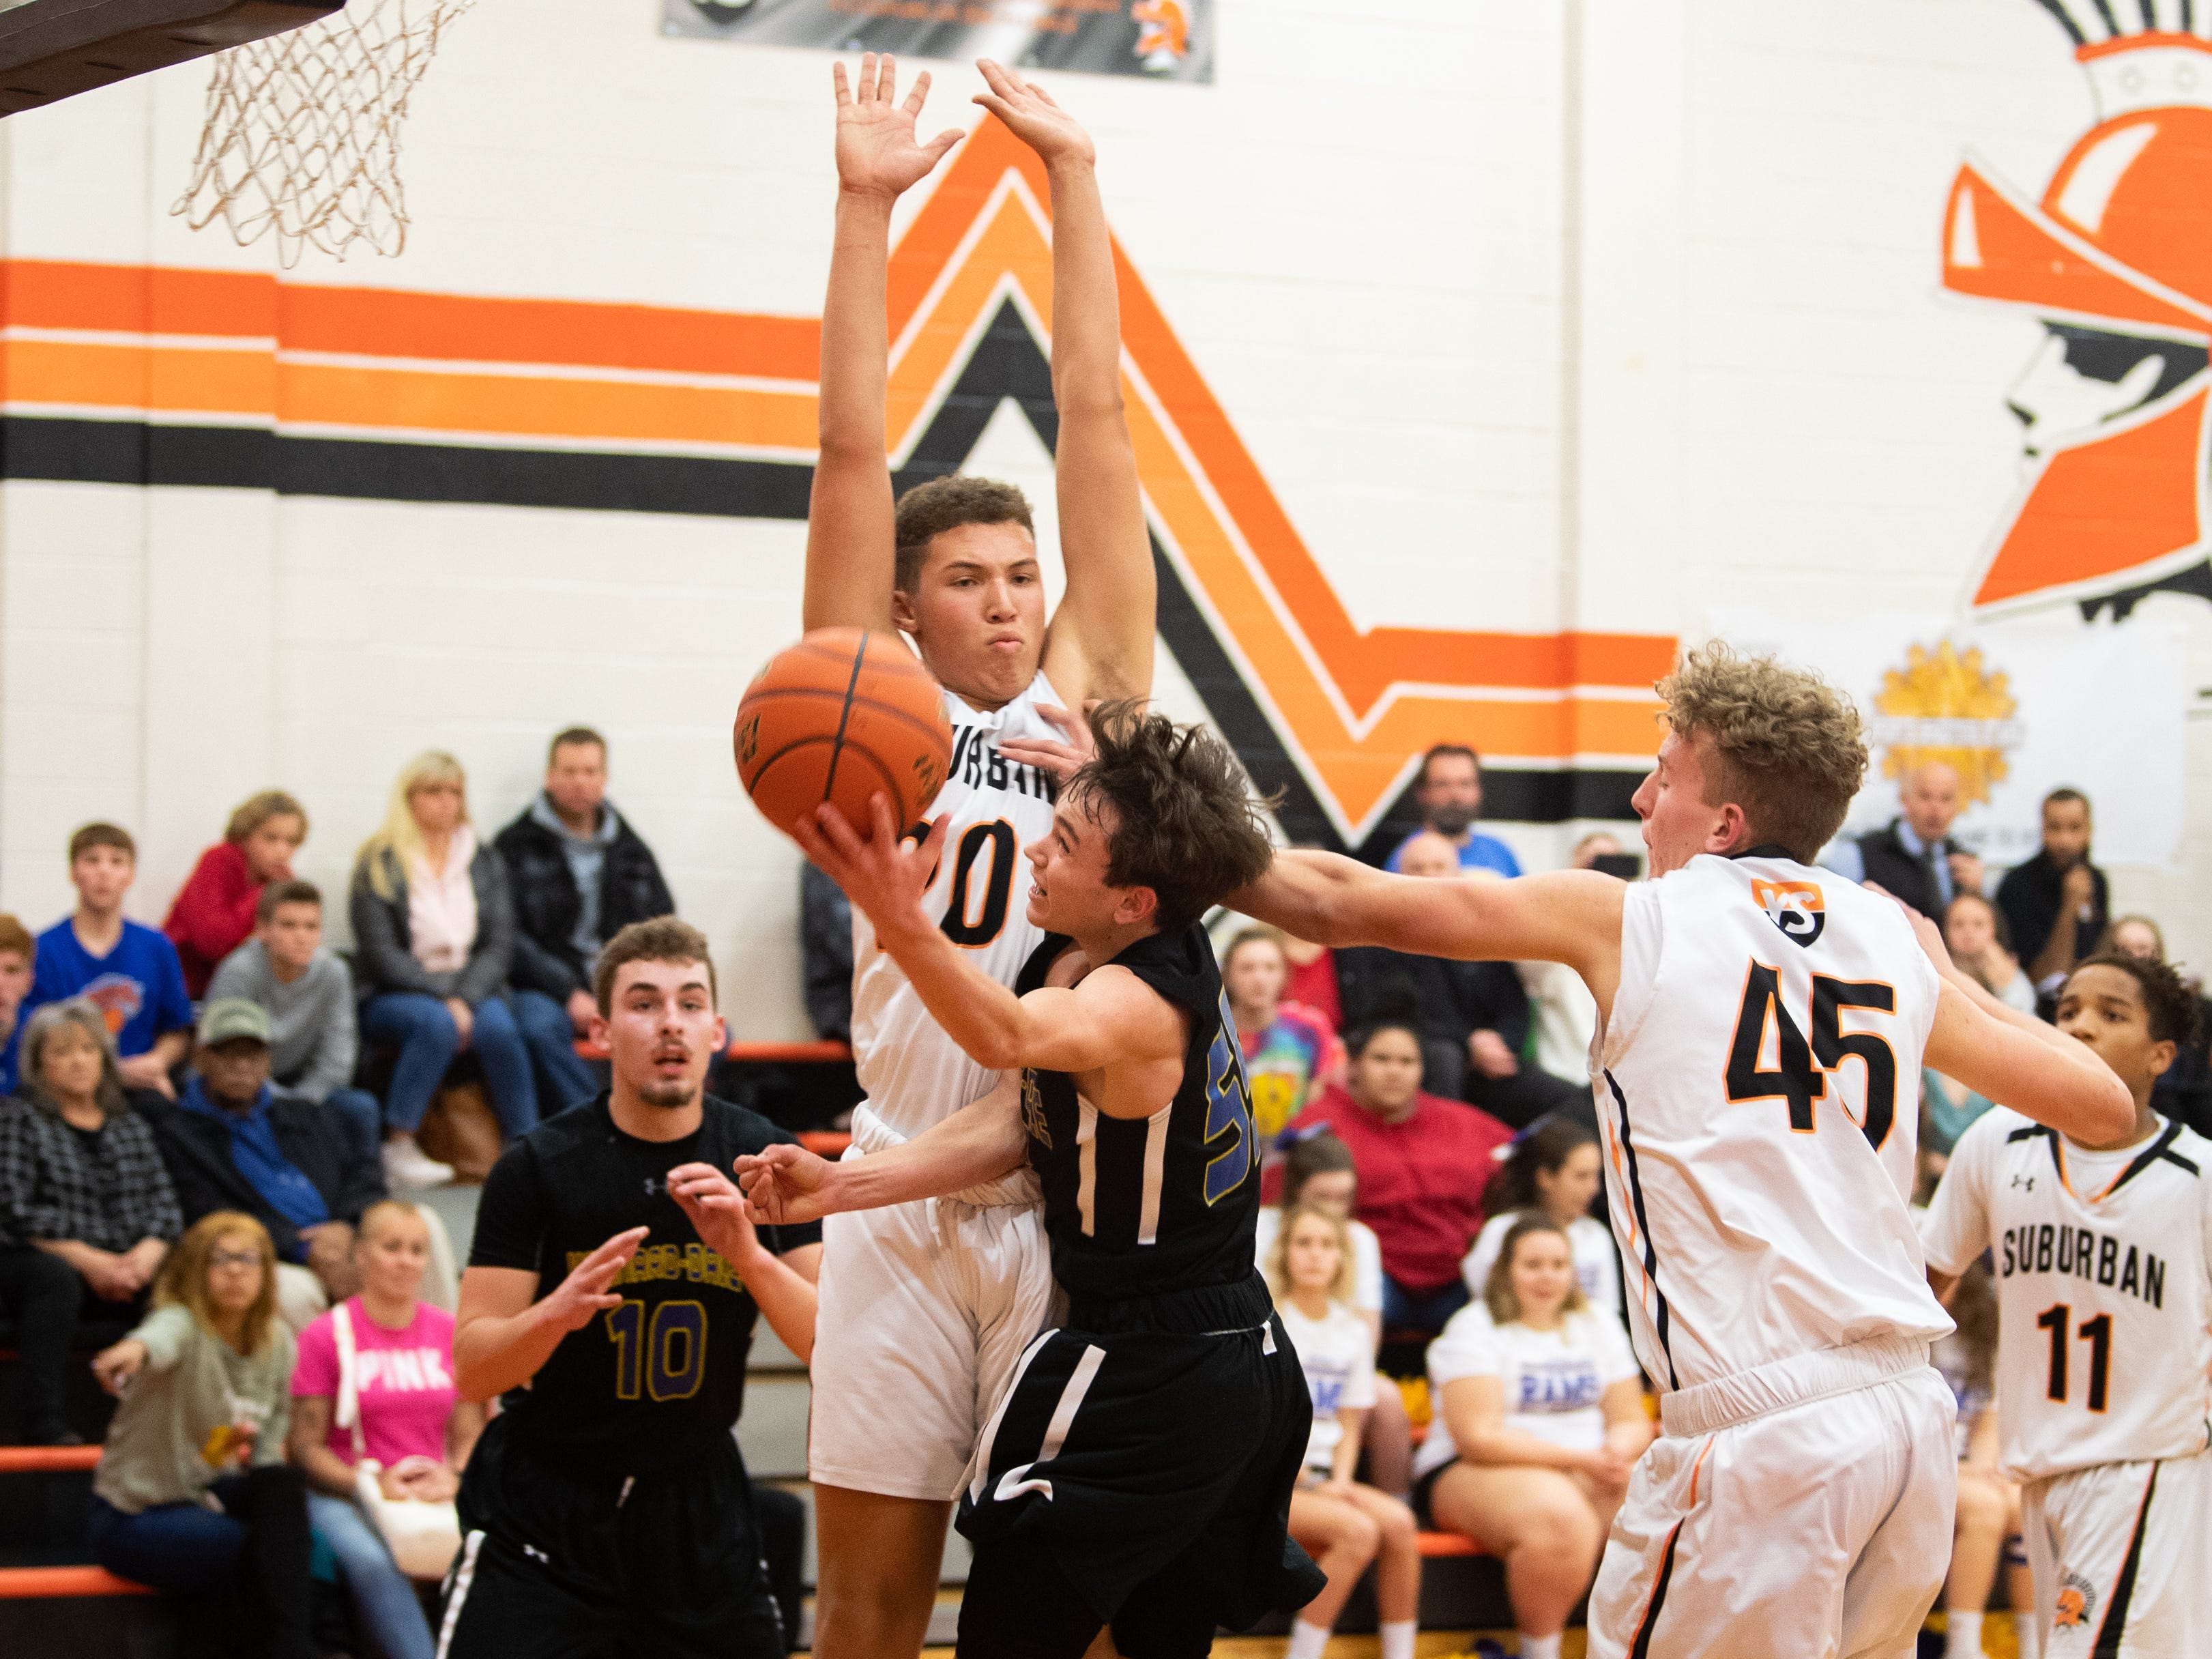 Aidan Hughley (20) and Alex Fuhrman (45) of York Suburban look to block Carter Day (55) of Kennard-Dale during the boys' basketball game, January, 4, 2019. The Rams beat the Trojans 65 to 63 in overtime.